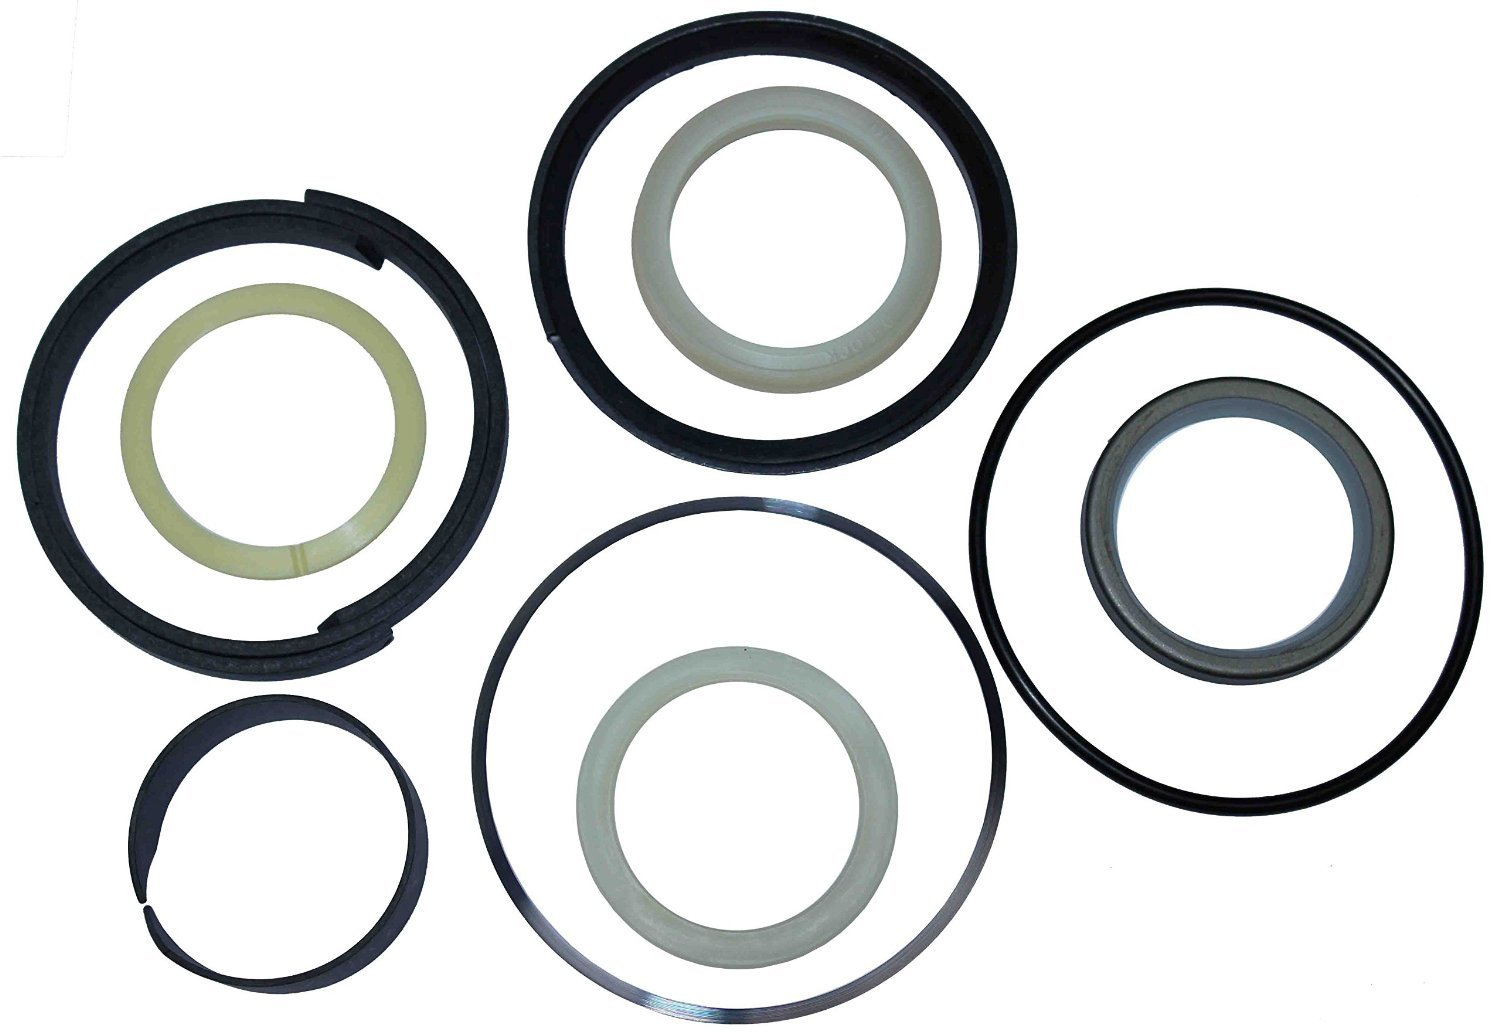 CASE 1543273C1 HYDRAULIC CYLINDER SEAL KIT TORNADO HEAVY EQUIPMENT PARTS